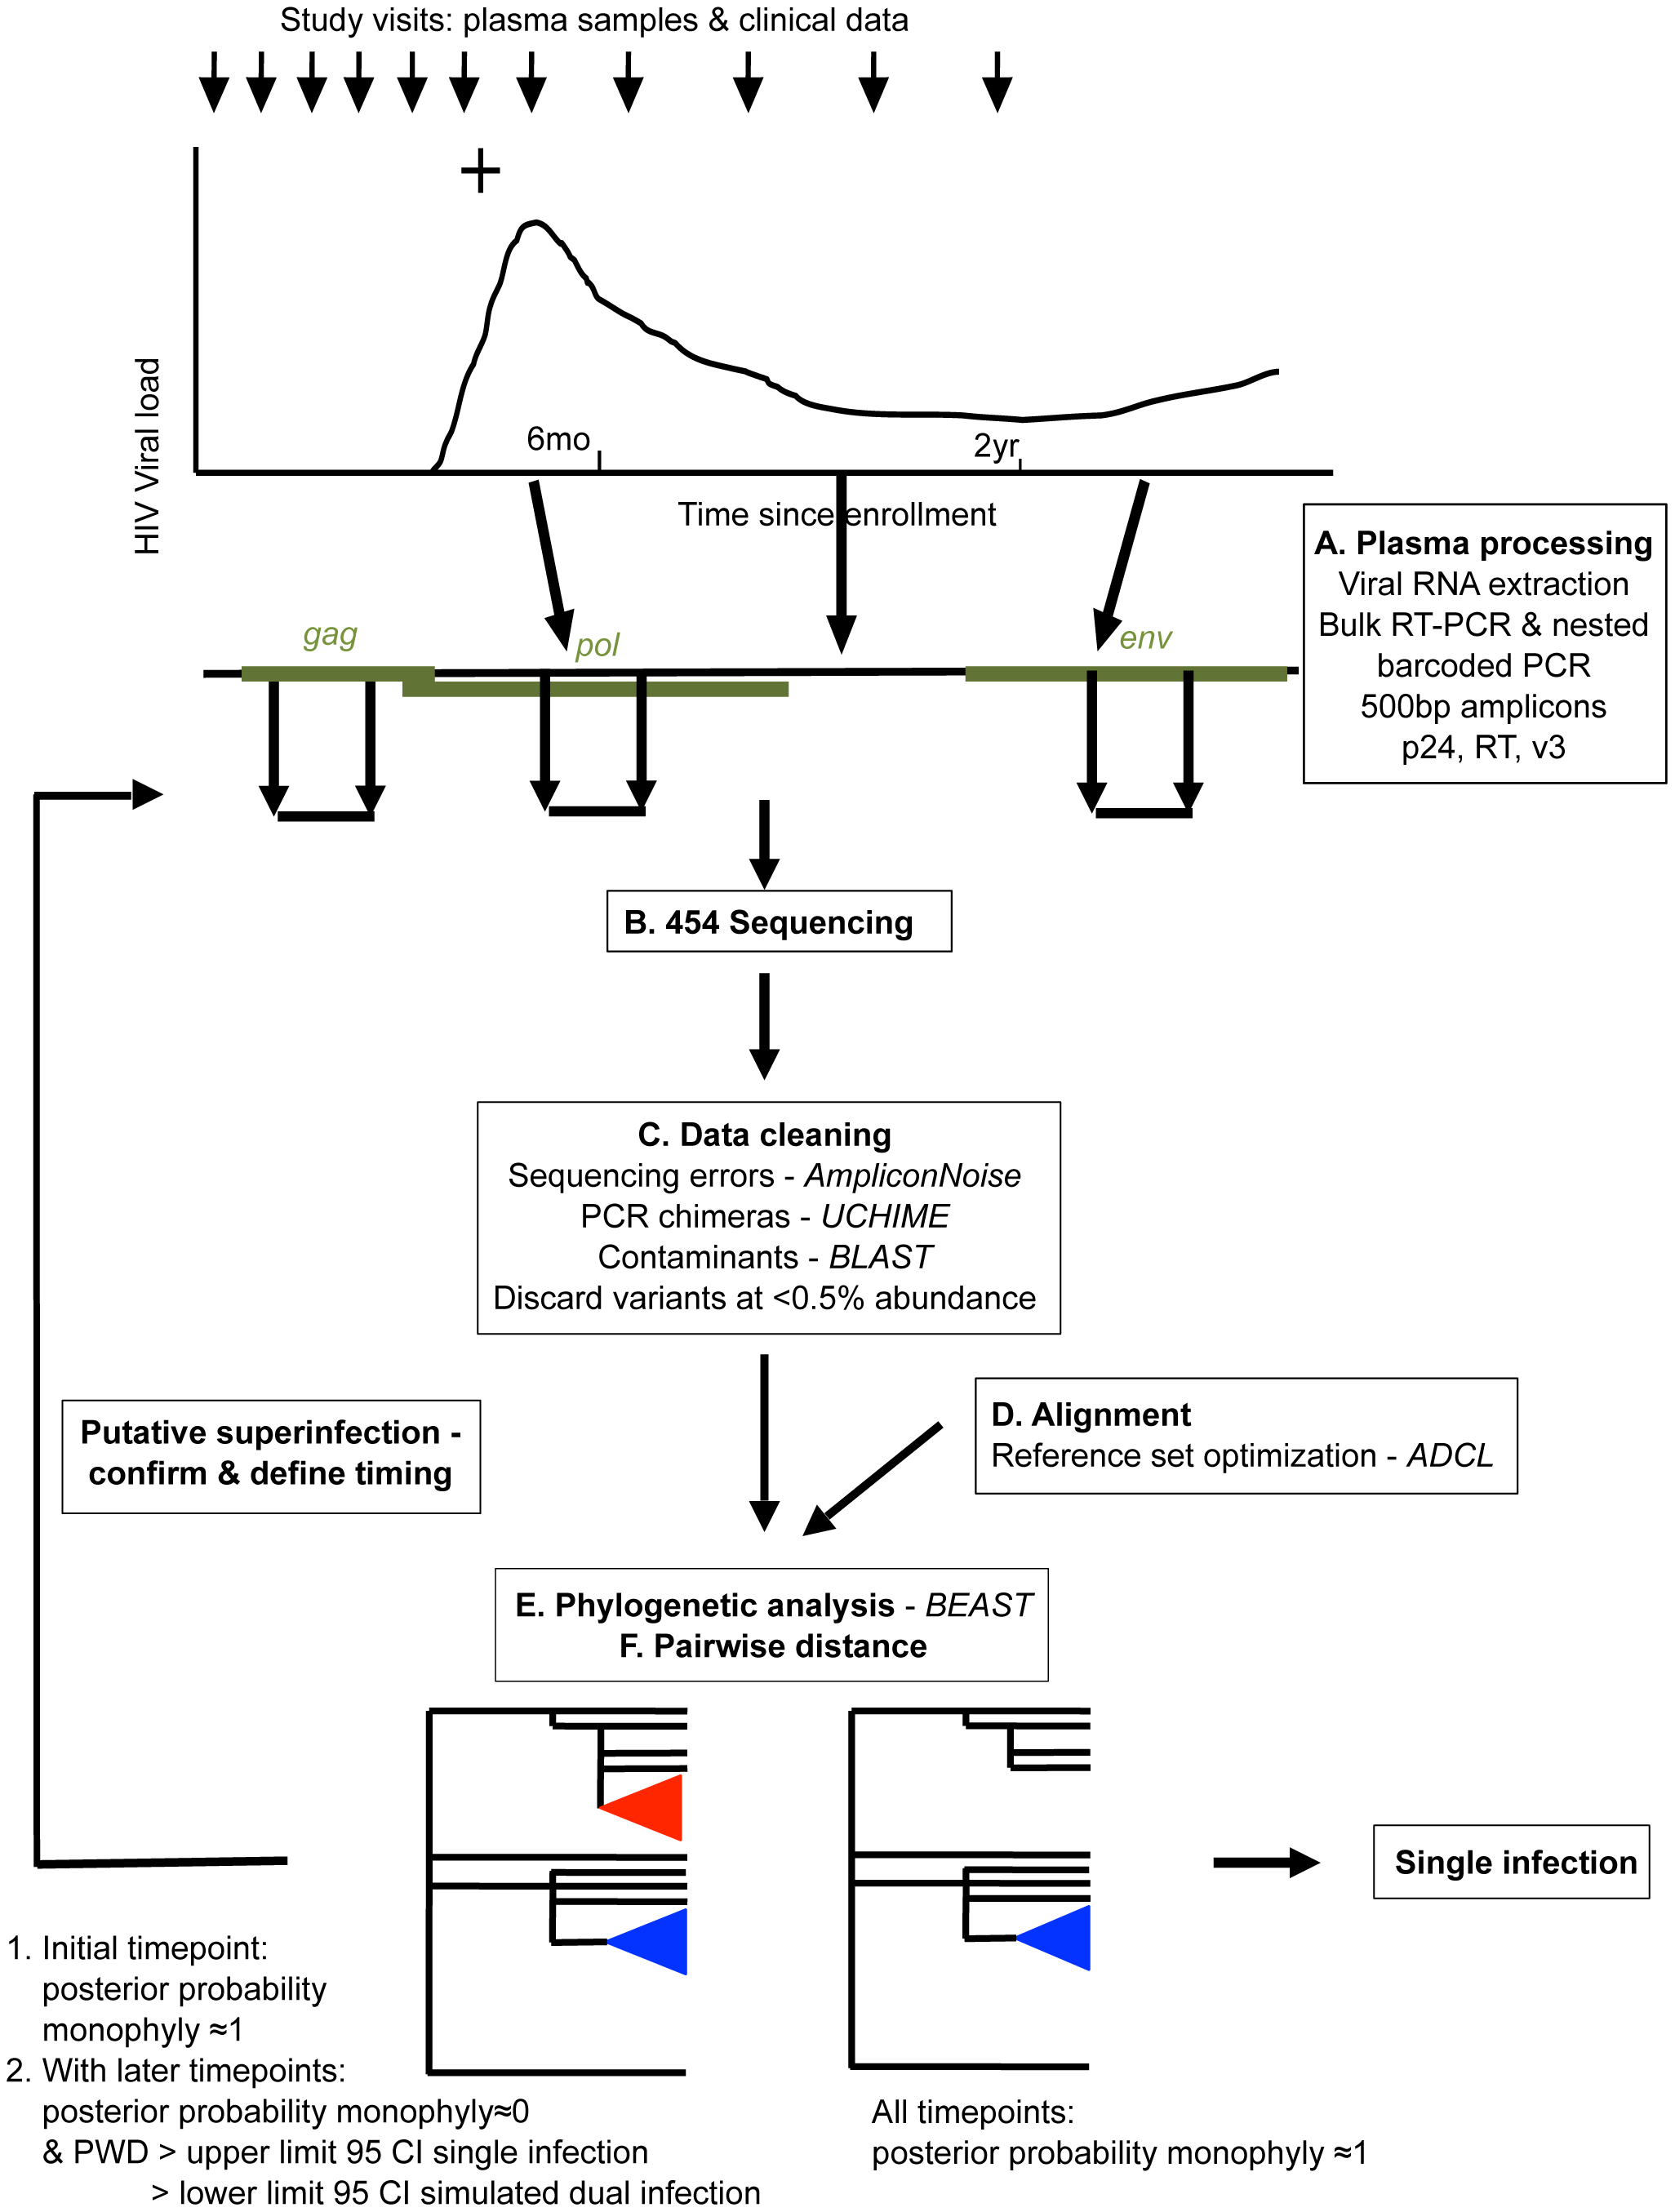 Overview of NGS superinfection screening pipeline.